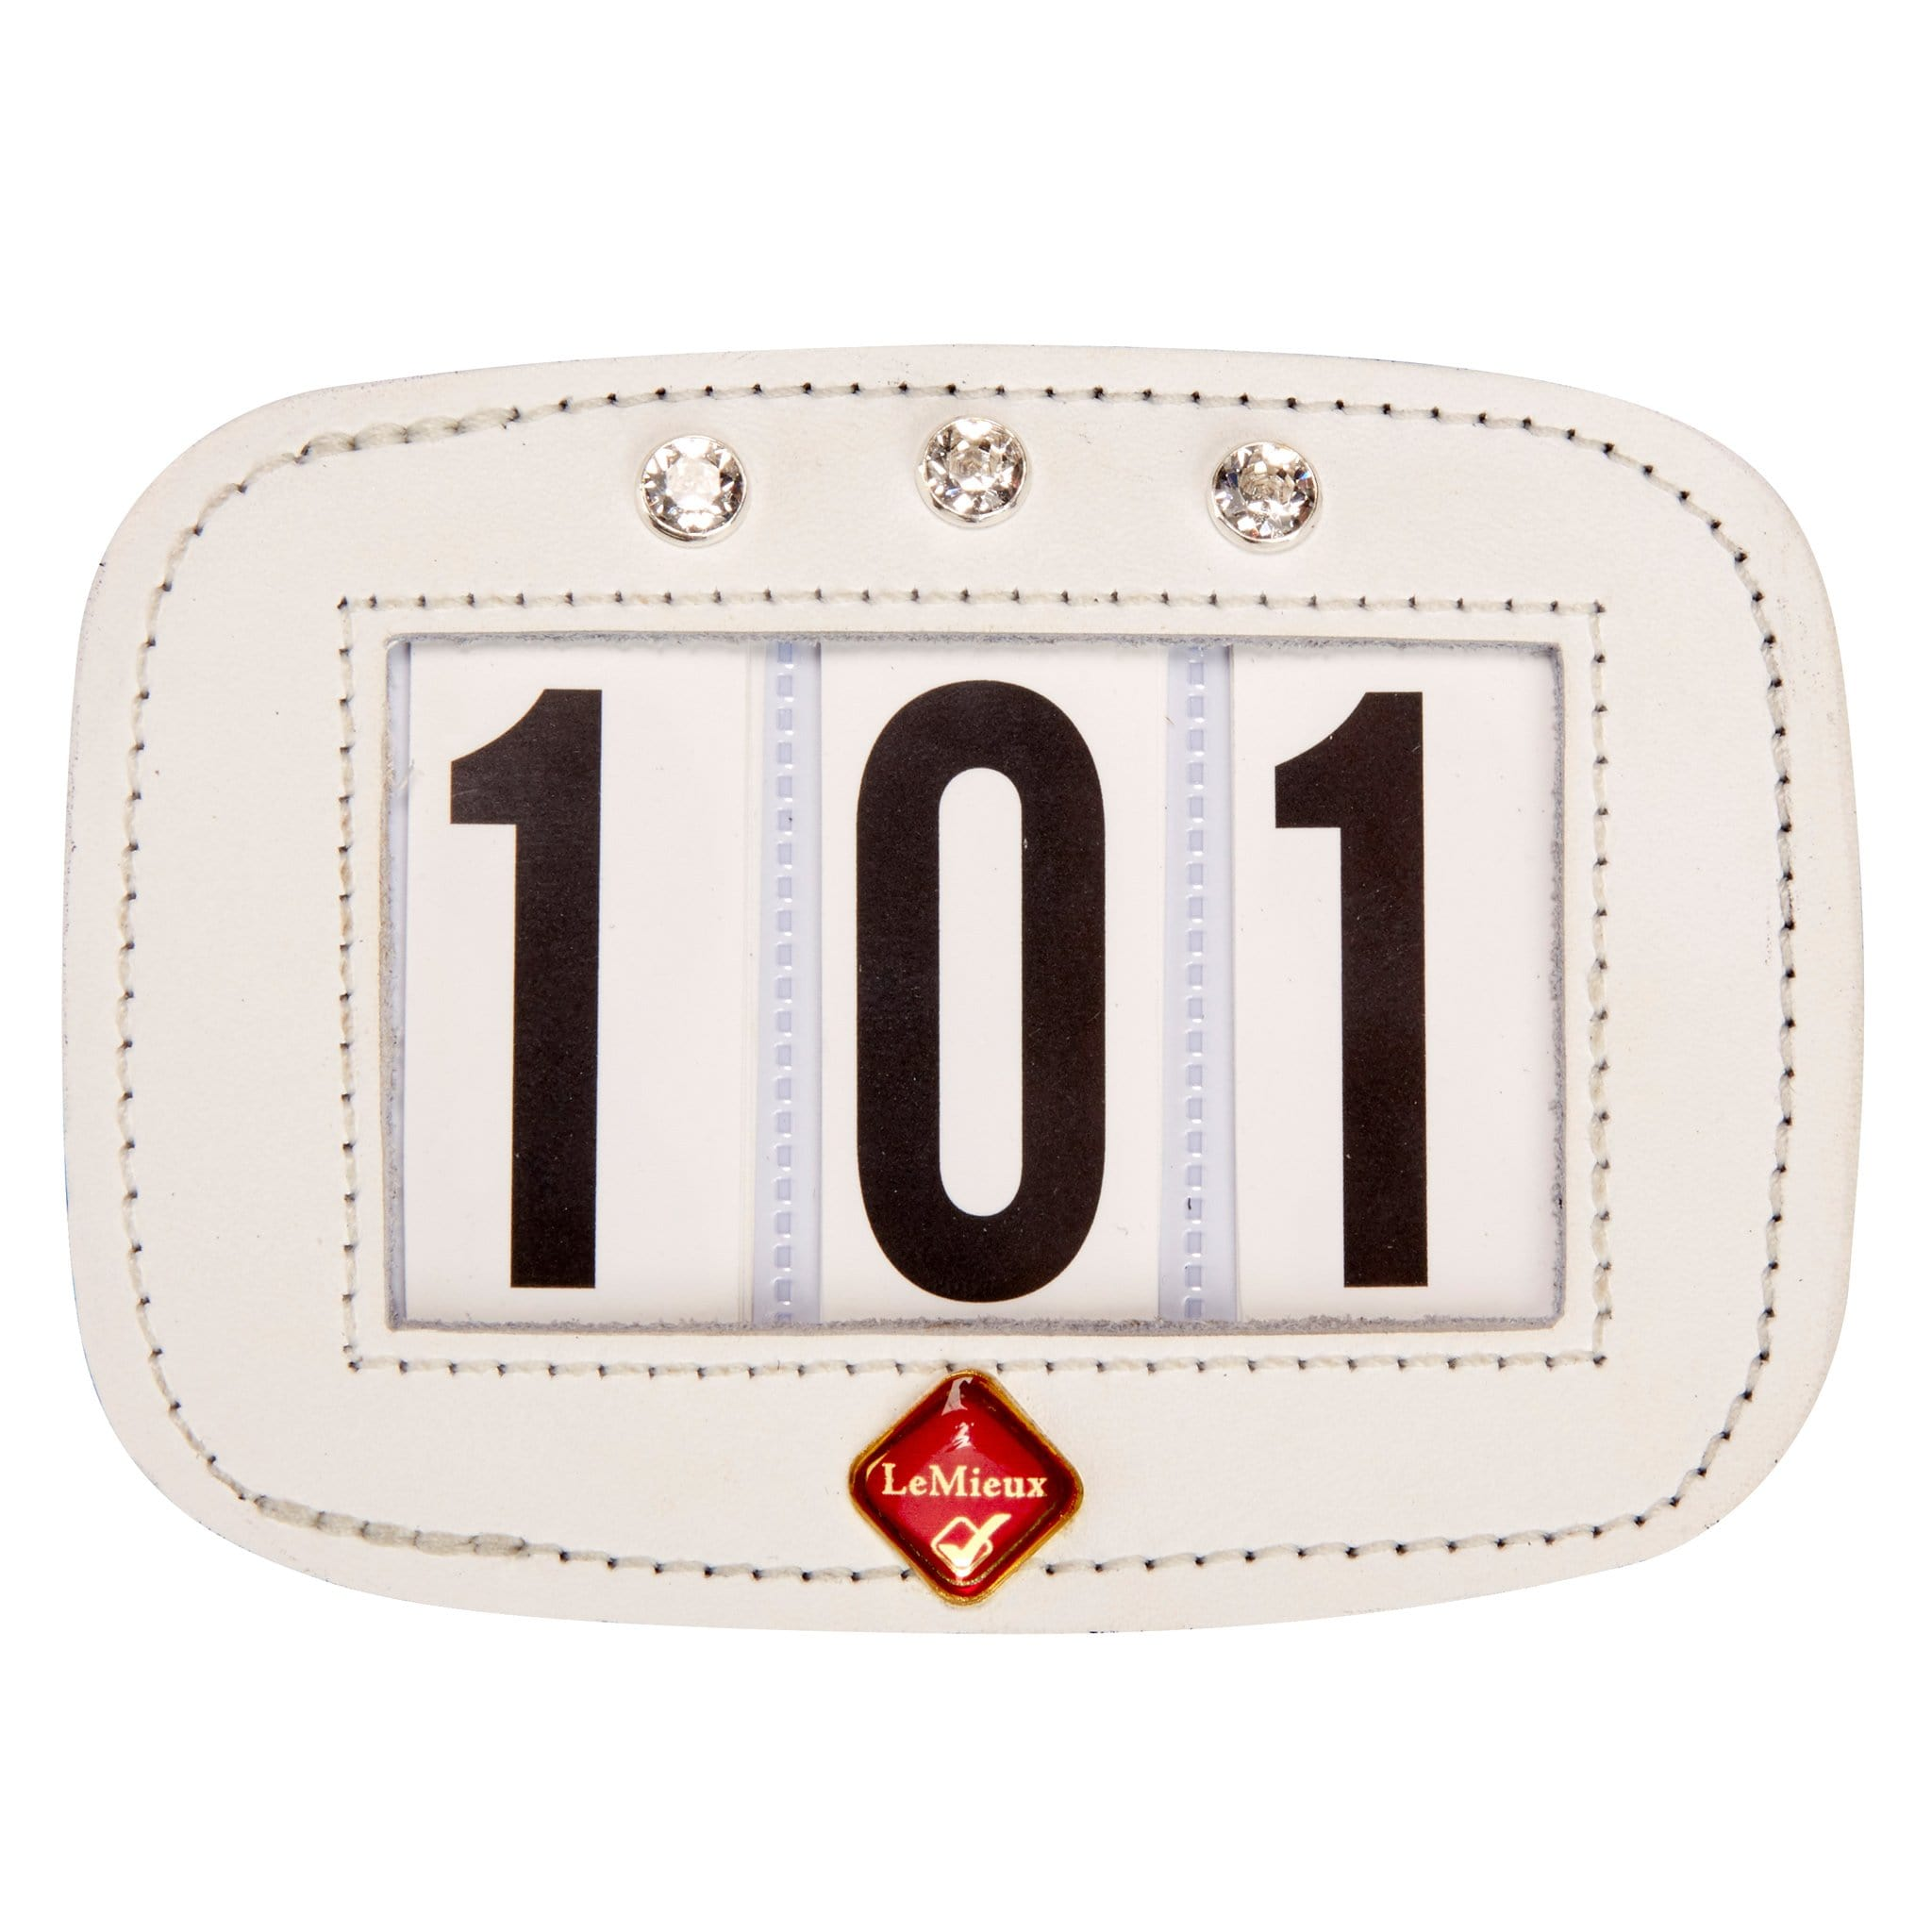 LeMieux Hamag Diamante Saddle Pad Number Holder 10293